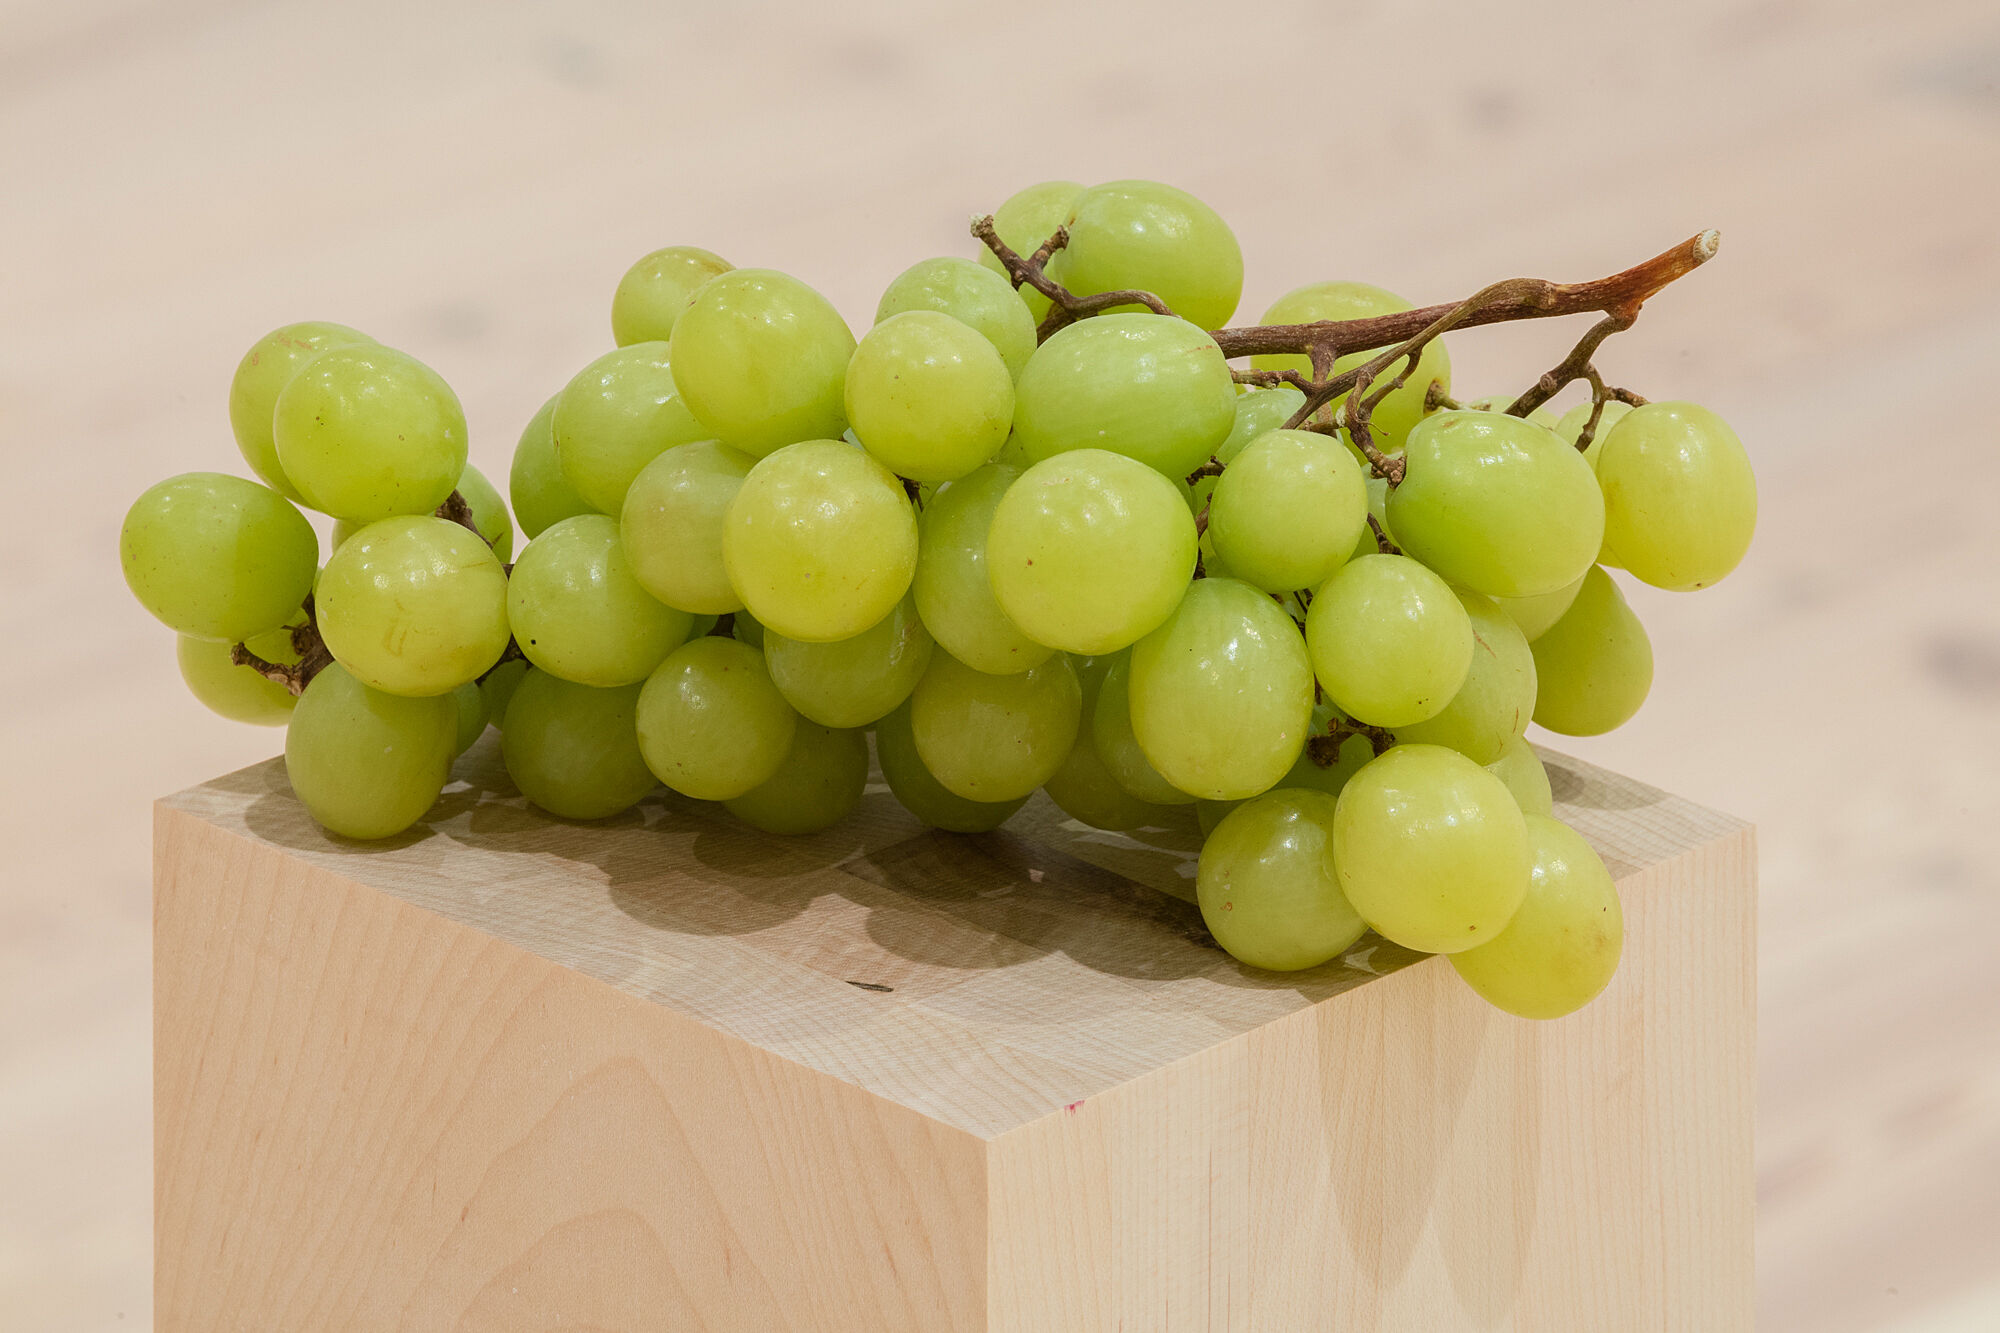 A photo of grapes on a plinth.